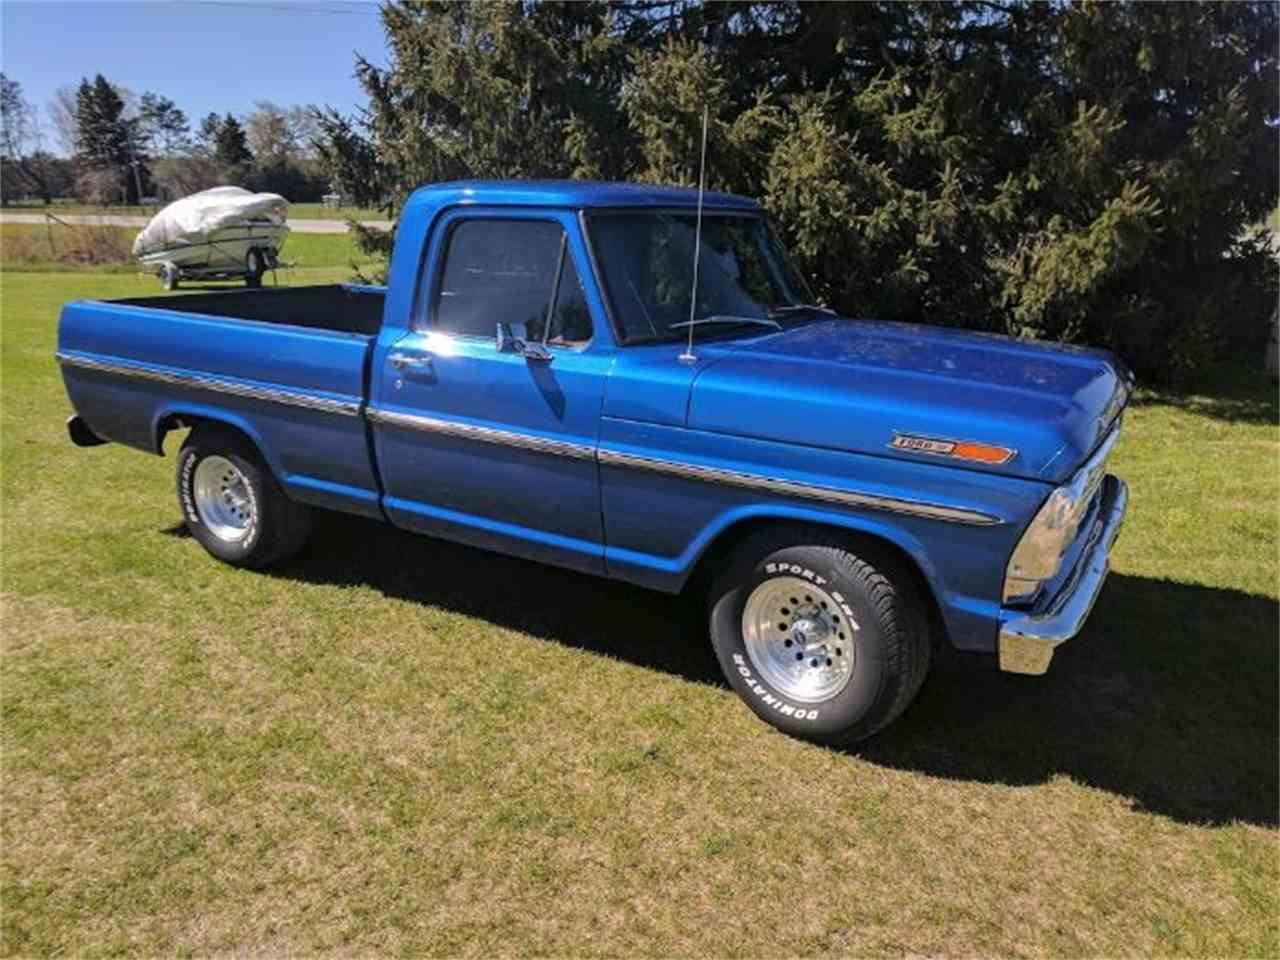 1969 Ford F-100 1/2 Ton Values   Hagerty Valuation Tool